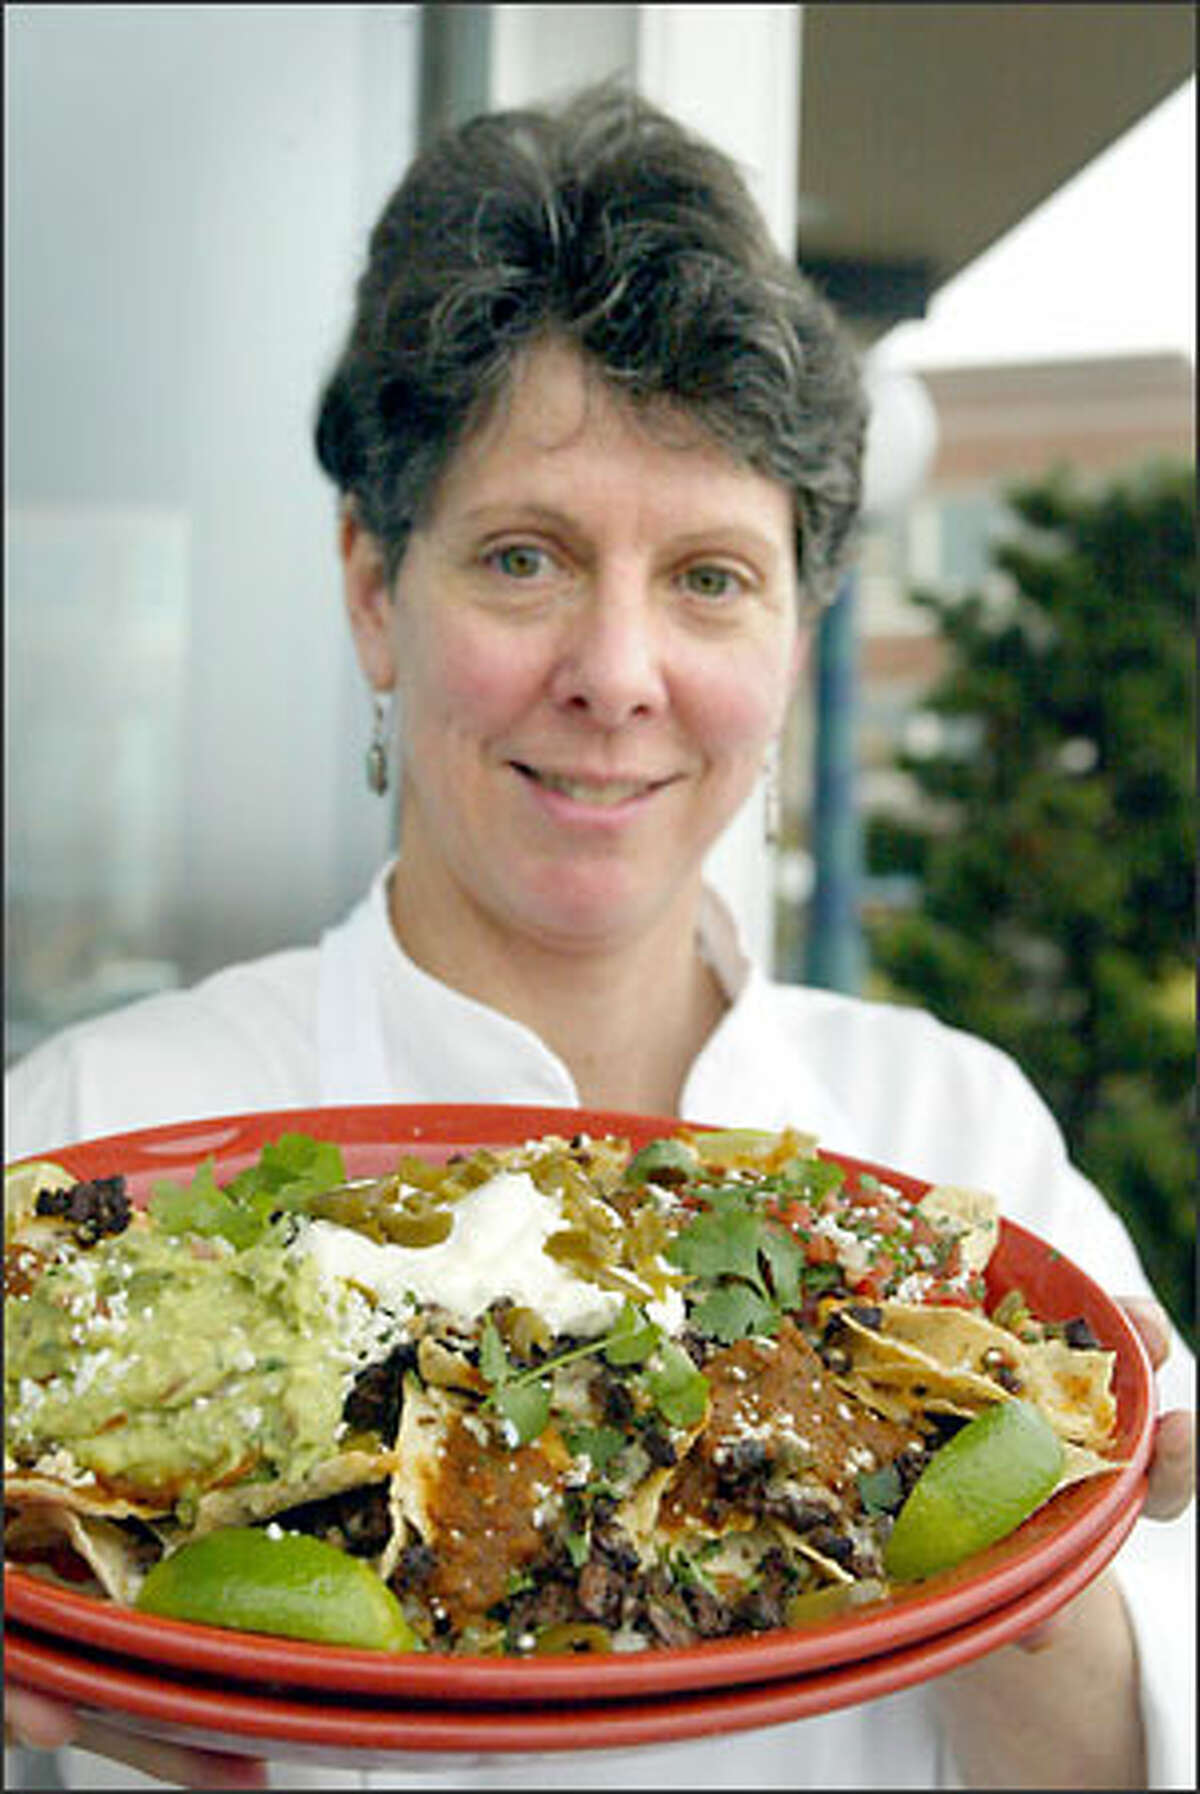 Yarrow Bay Grill's Vicky McCaffree scores a touchdown for East with her American Kobe Beef Nachos, served with sides of salsa, sour cream and guacamole.